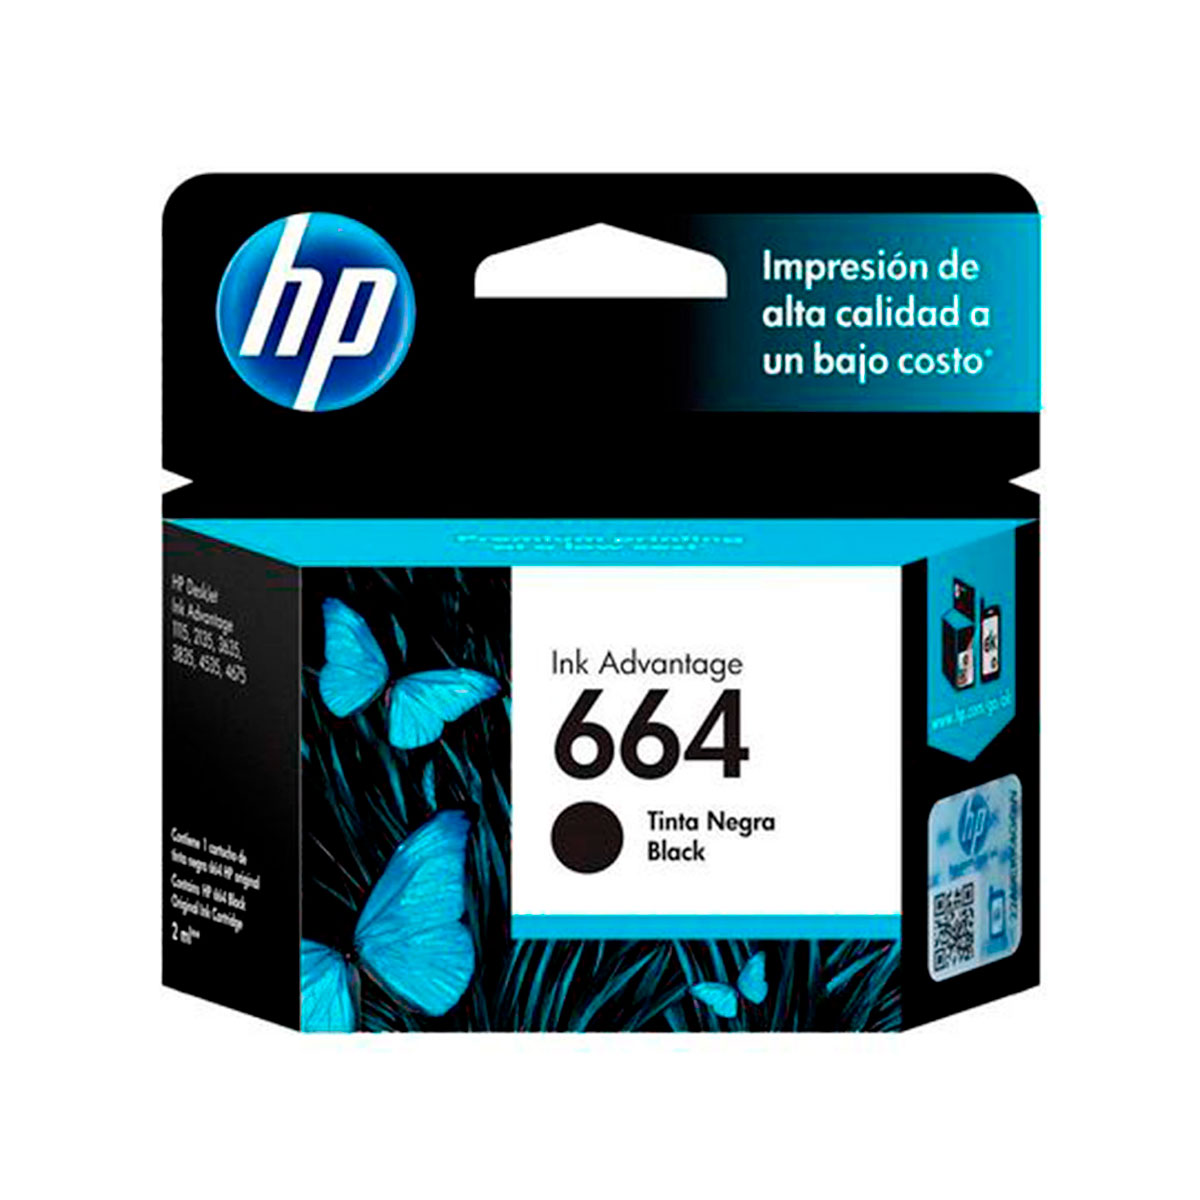 F6V29AL HP                                                           | CARTUCHO HP 664 / F6V29AL NEGRO PARA HP DESKJET INK ADVANTAGE 1115, ALL-IN-ONE DESKJET INK ADVANTAGE 2135, 2675, 3635, 3775, 3785, 3787, 3835, 4535, 4675